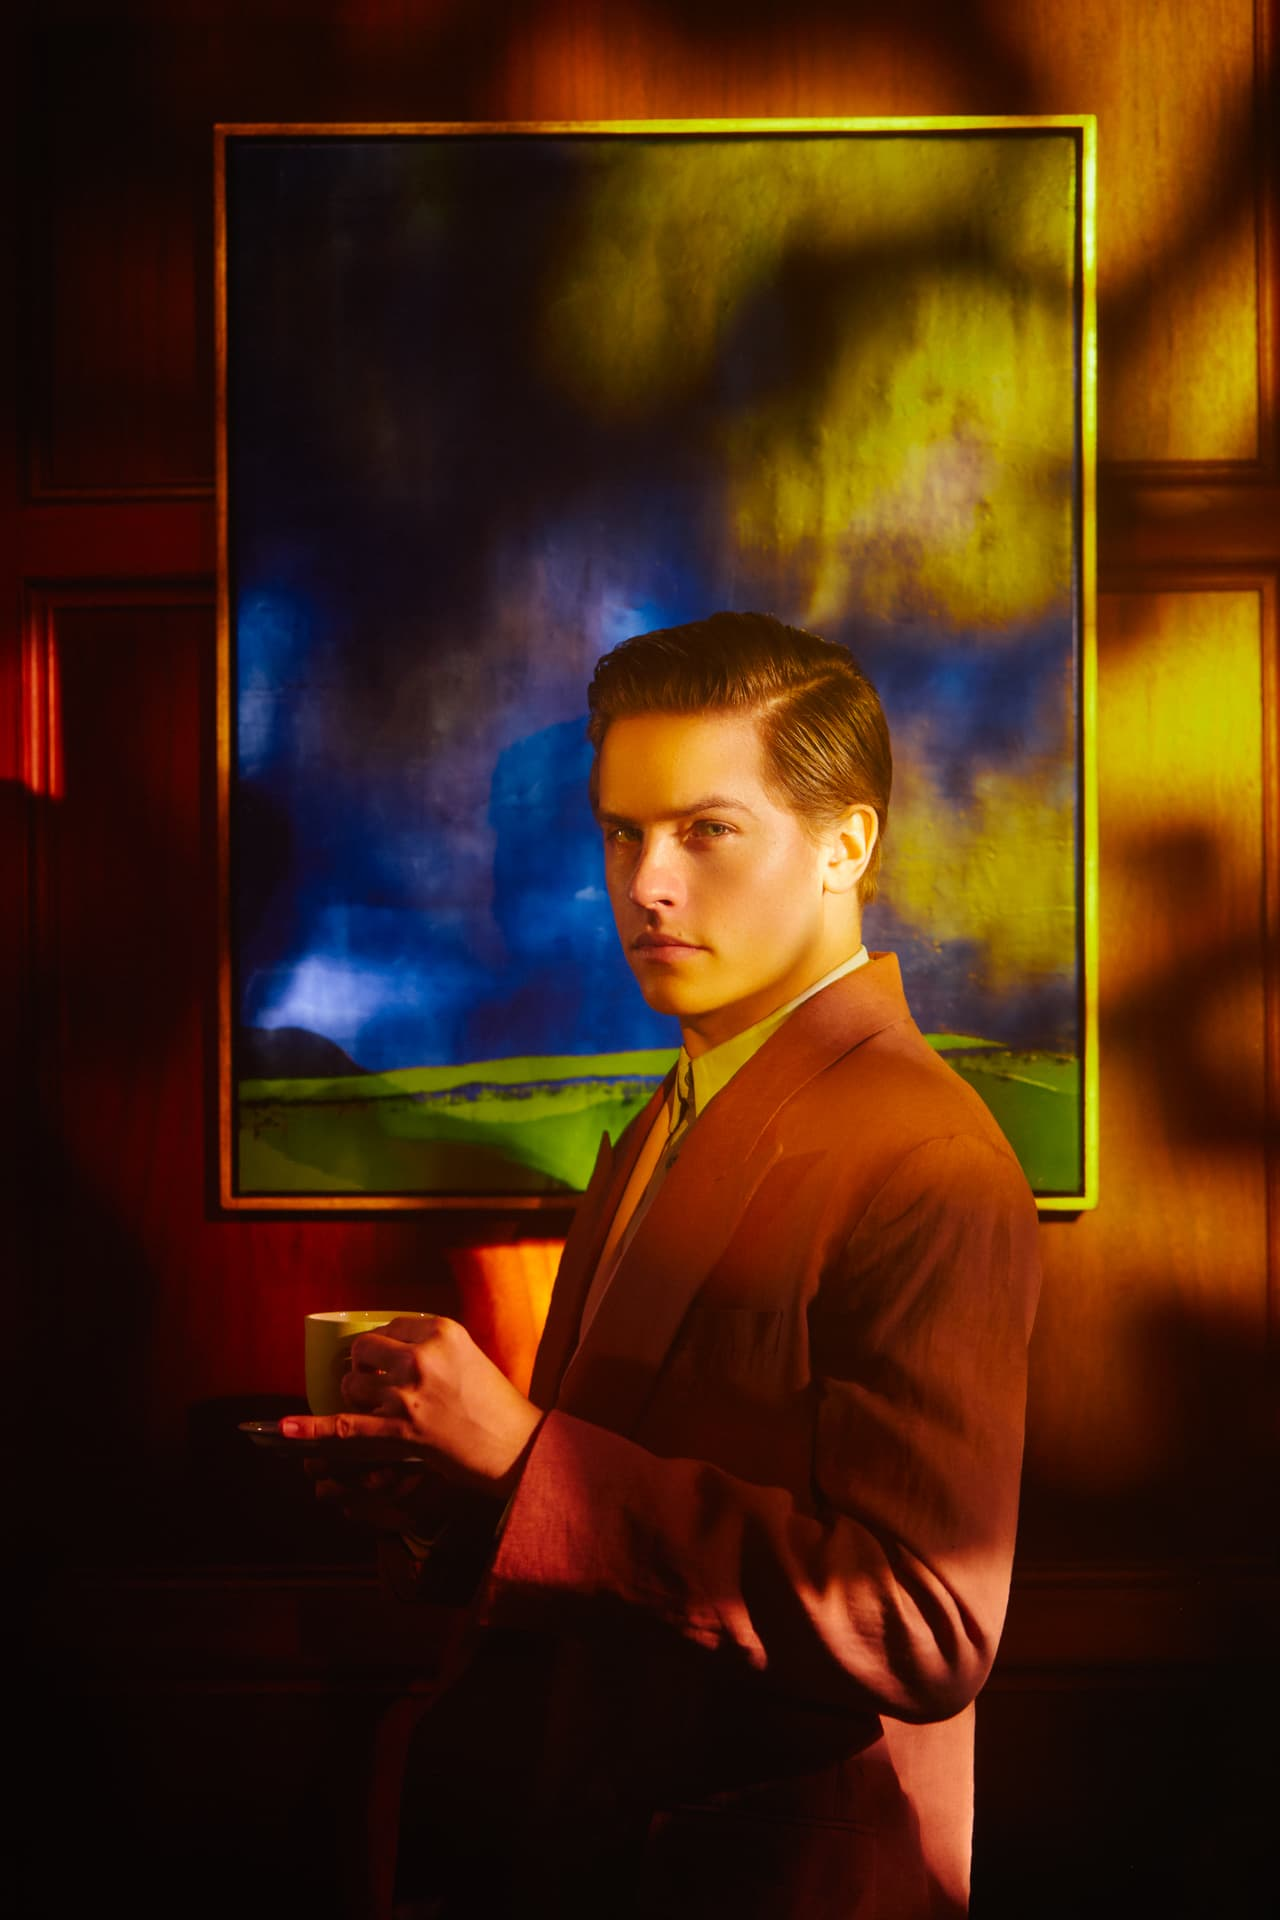 Dylan Sprouse for Esquire Singapore